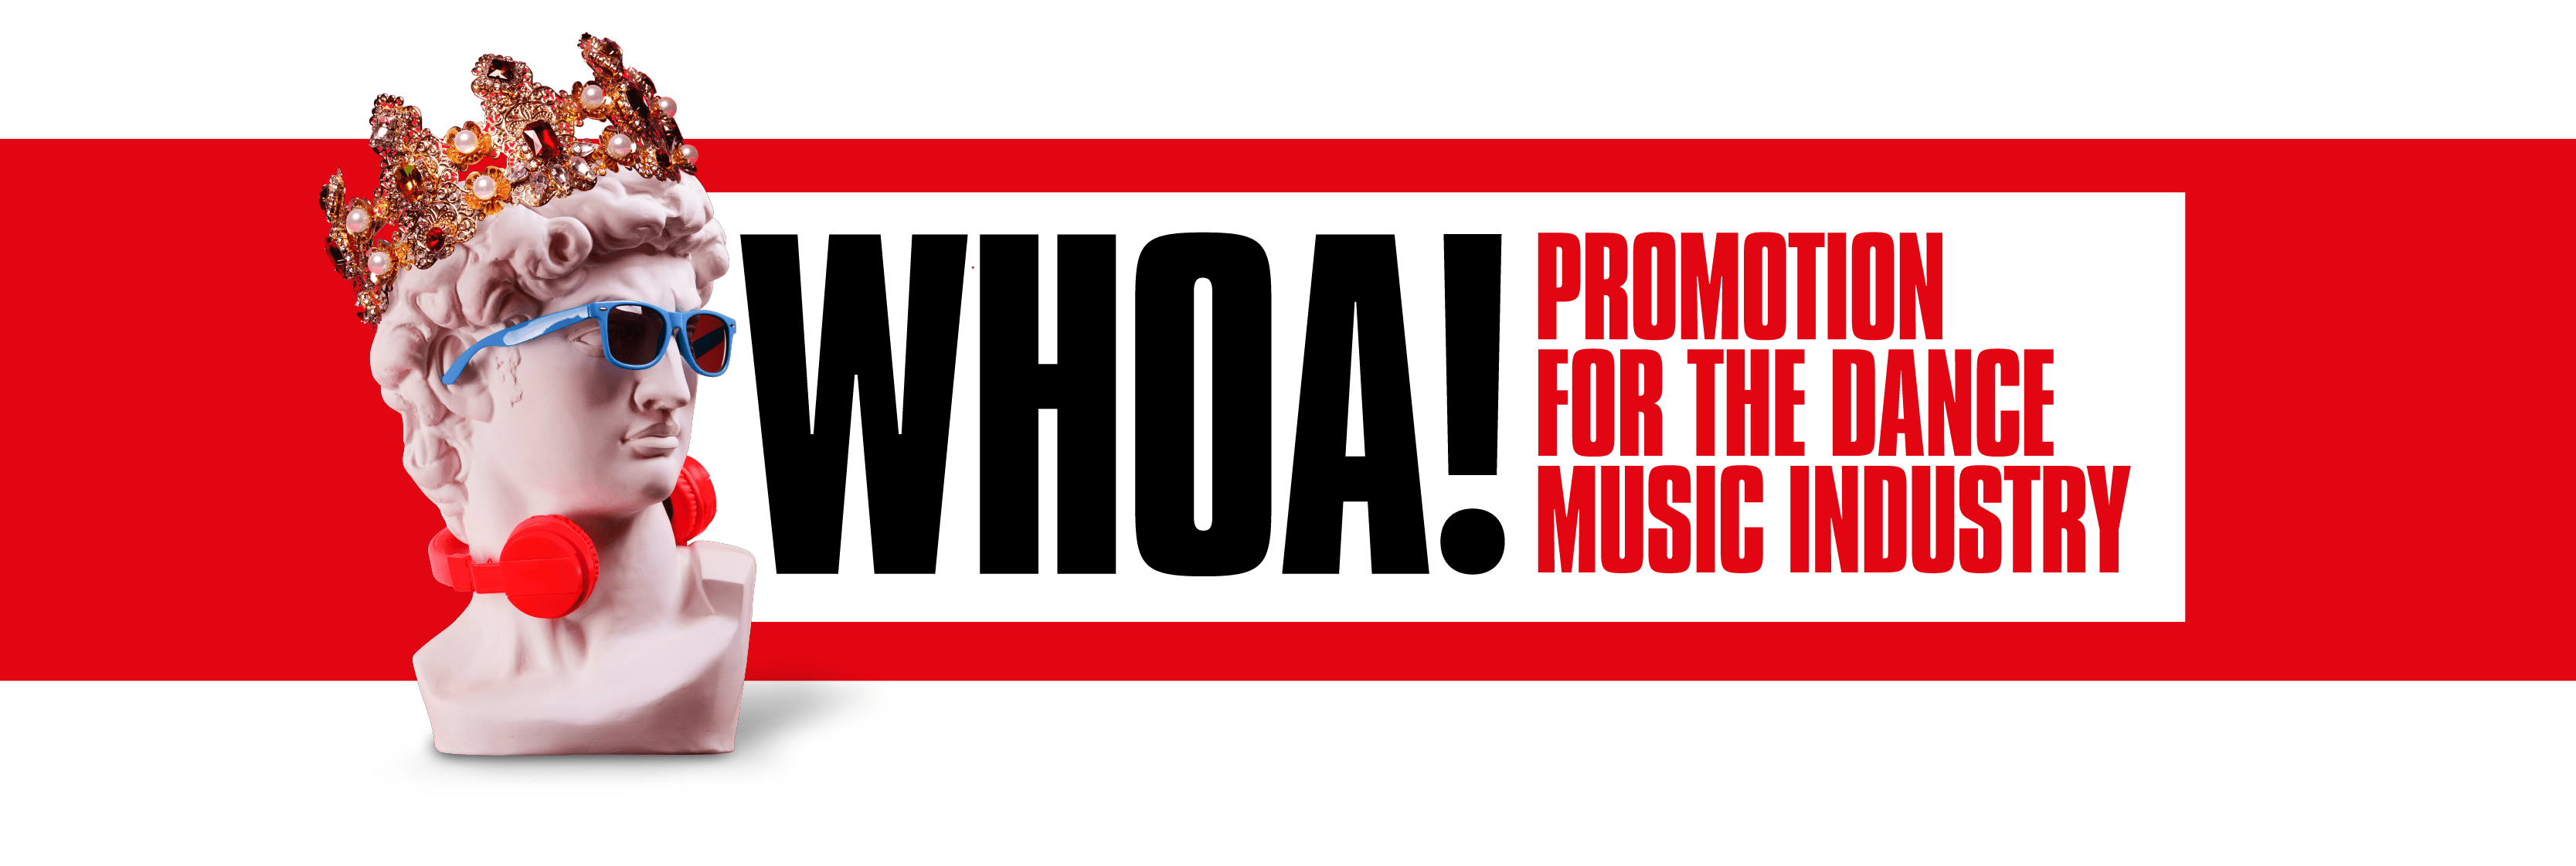 Whoa Promo Bespoke Club & Radio Promotion for the Dance Music Industry